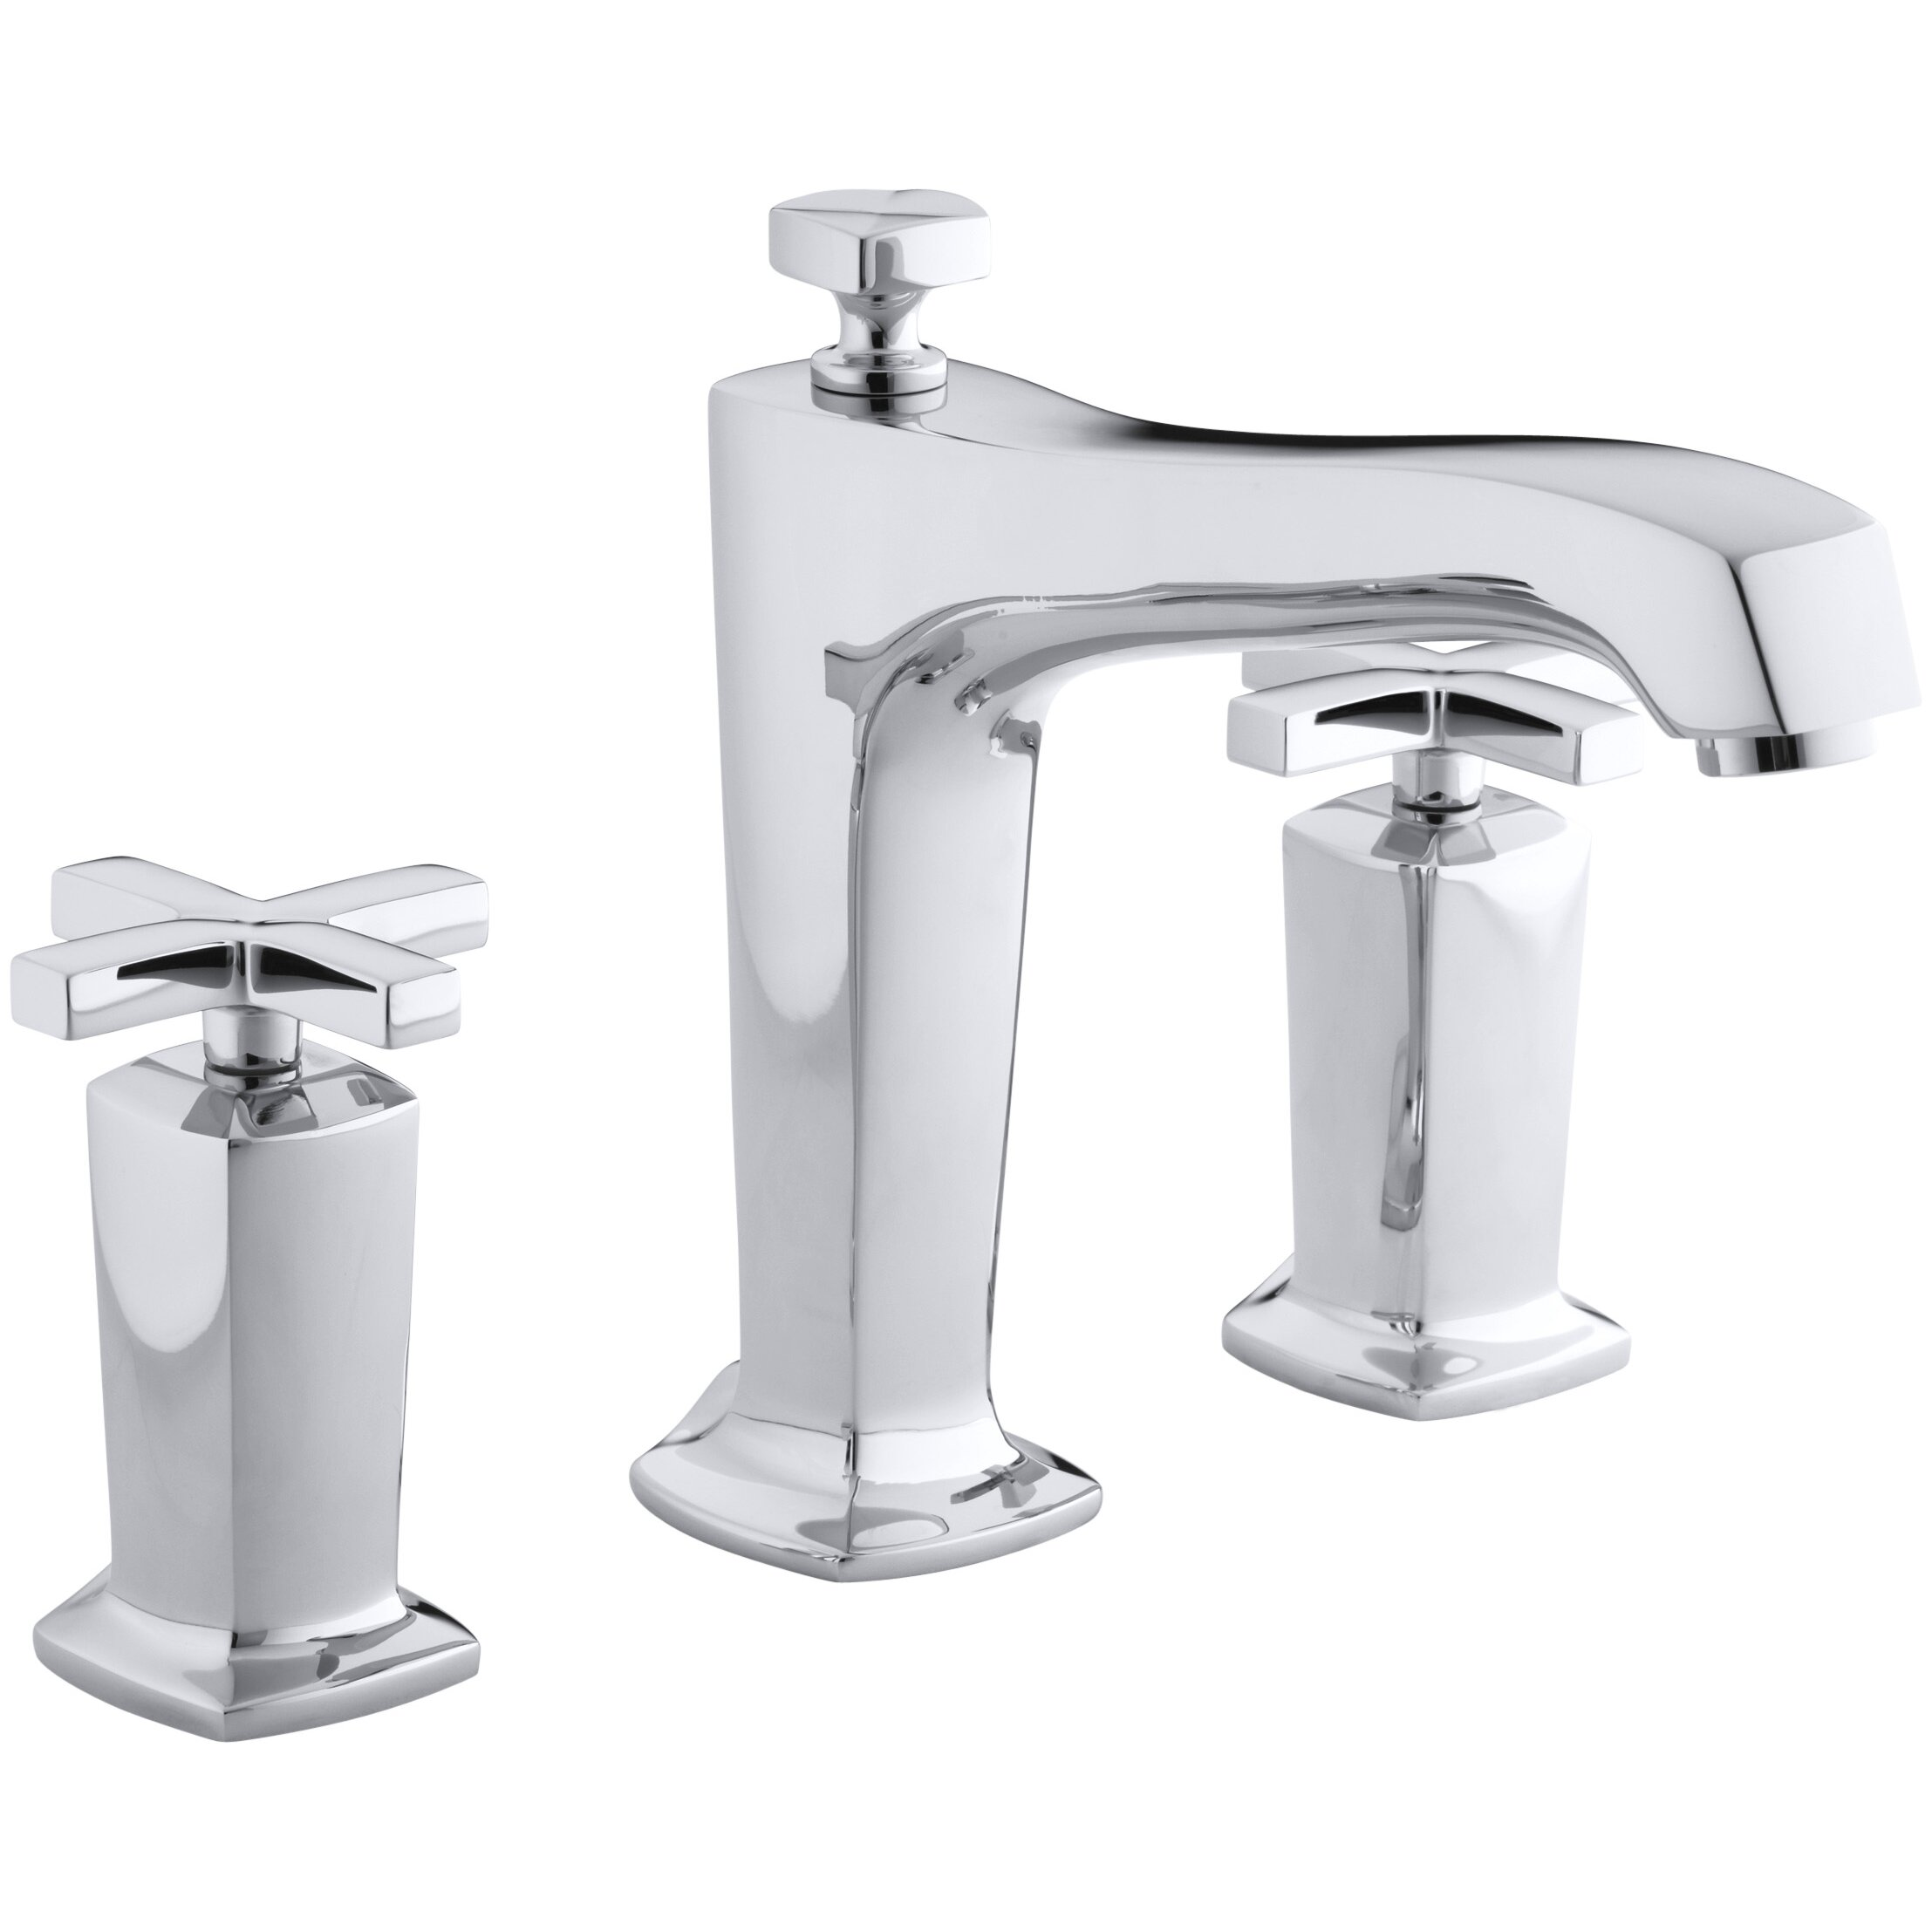 Hansgrohe 34415 Axor Citterio M Deck Mounted Diverter Tub Align ...